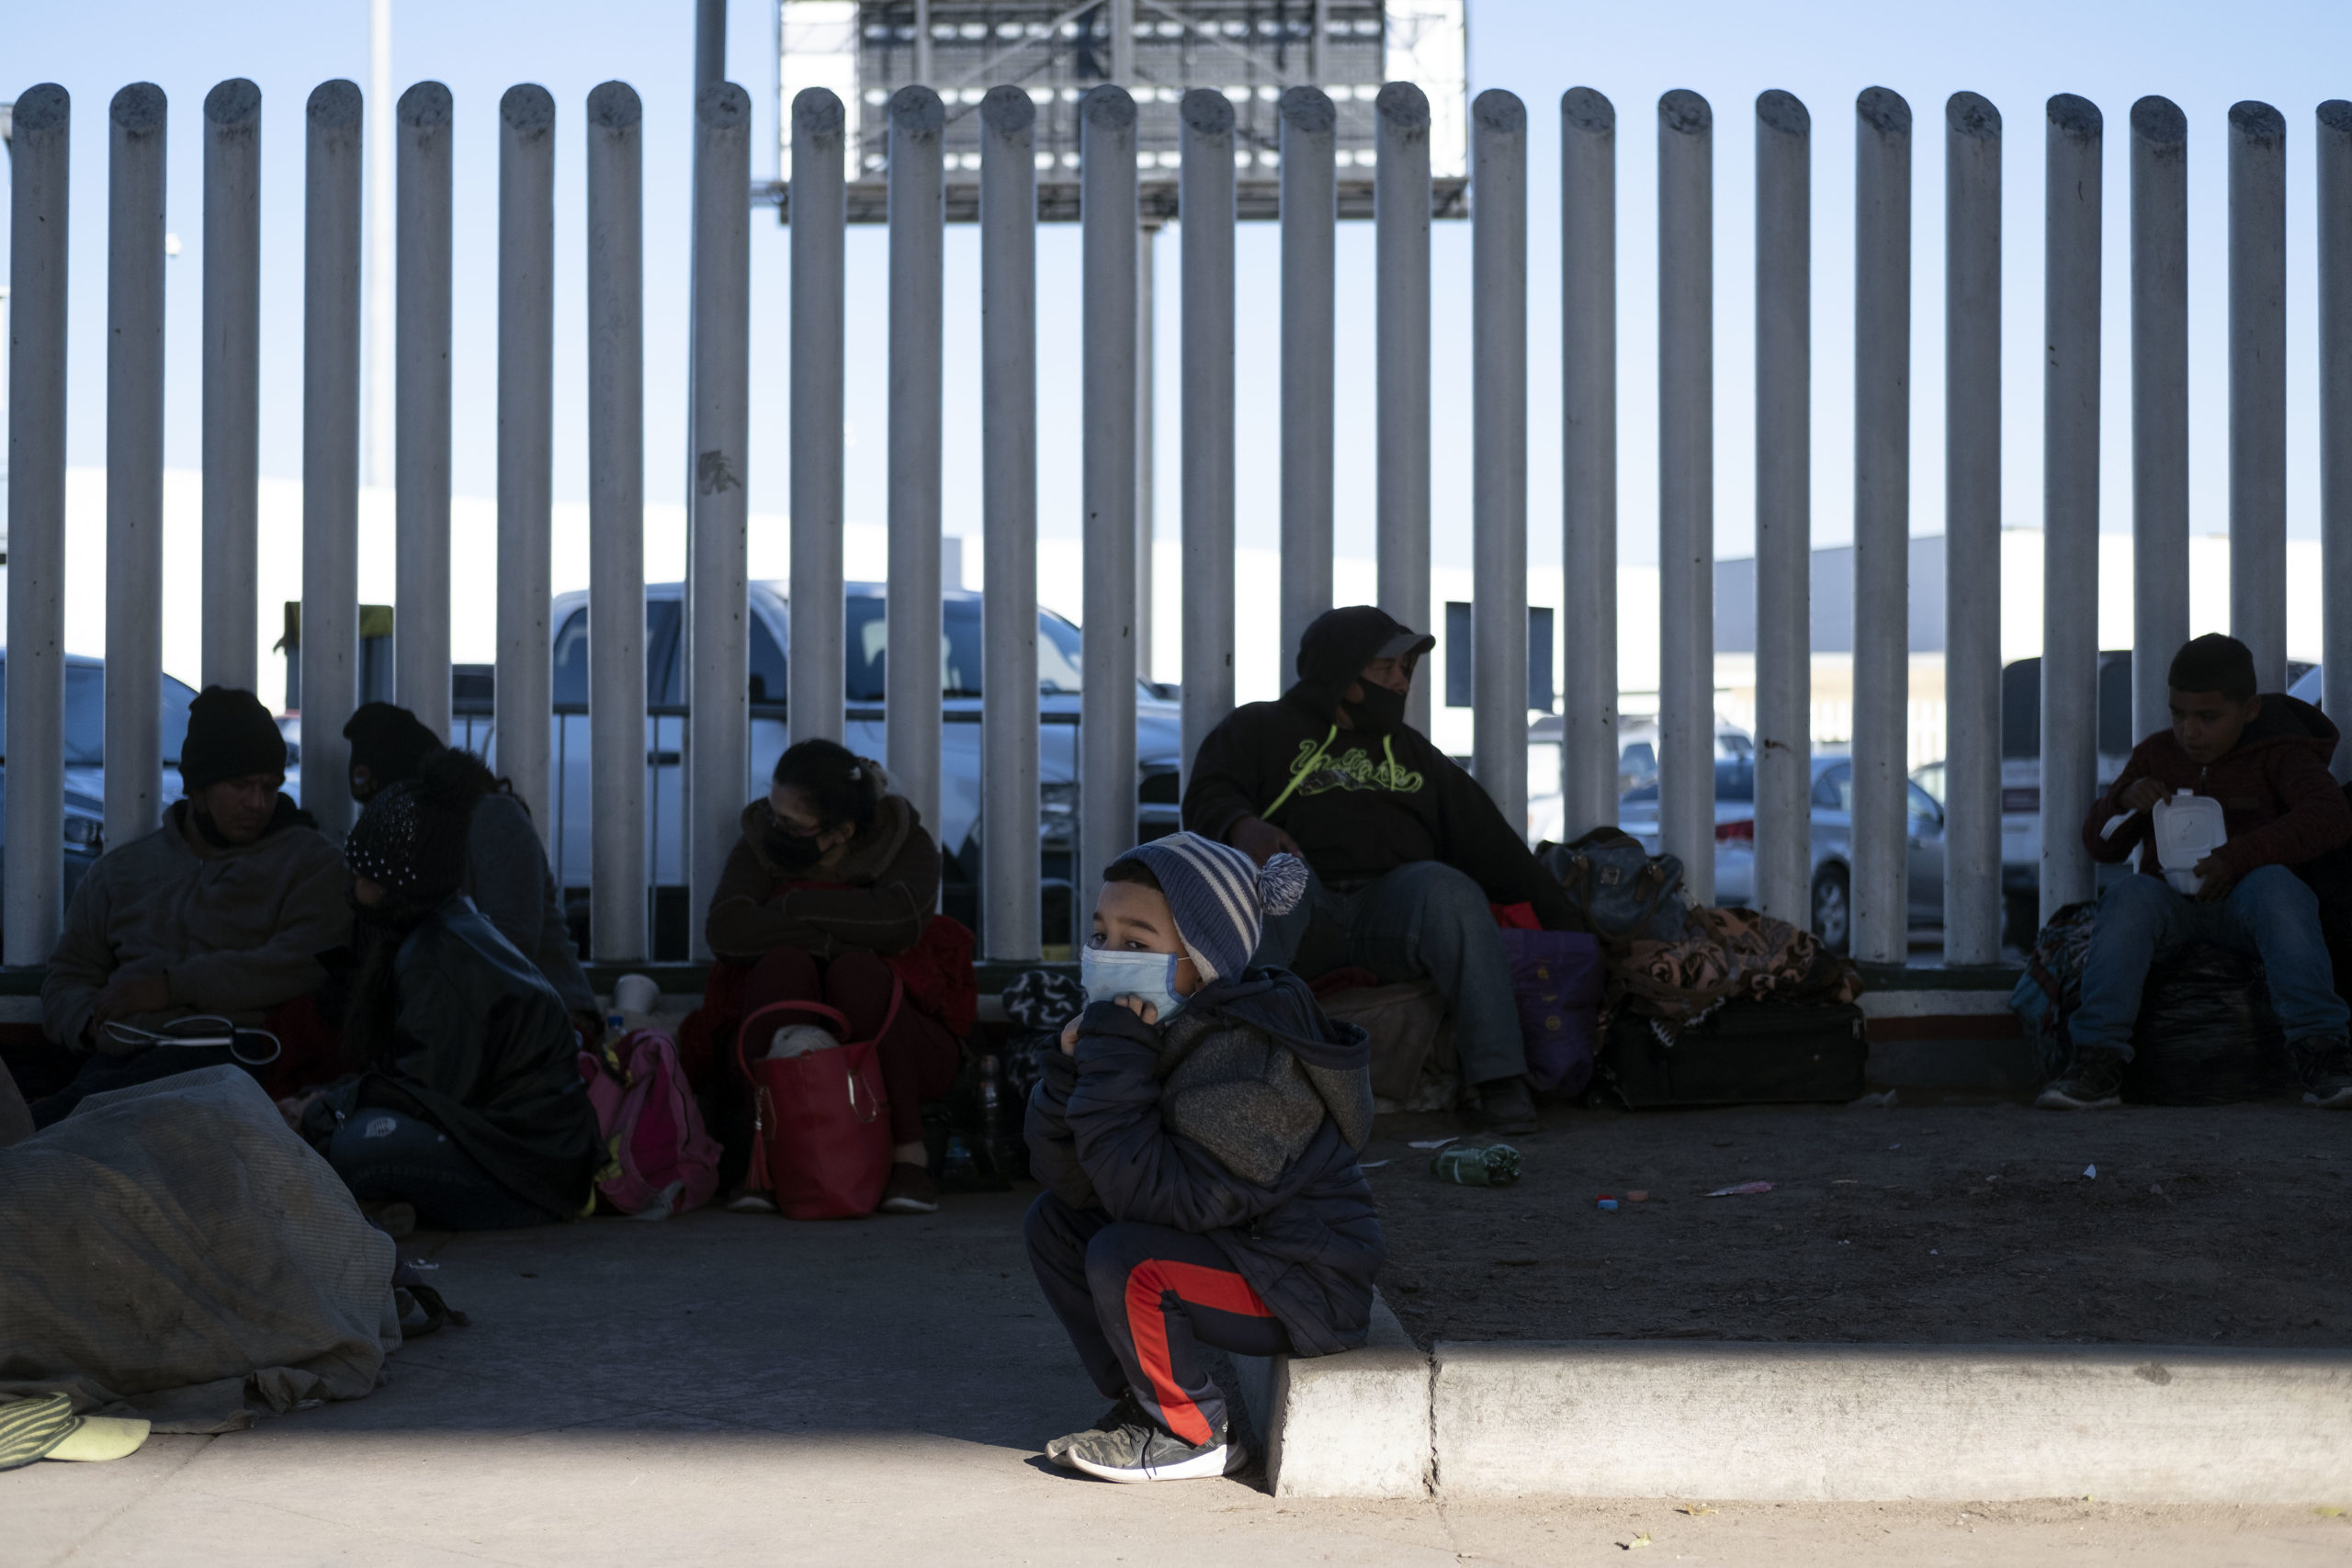 Asylum seekers wait outside El Chaparral crossing port as they try to cross to the United States in Tijuana, Baja California state, Mexico on February 19, 2021. - Hundreds of asylum-seekers were waiting nervously on the US-Mexican border Friday, praying that they would be allowed entry as part of President Joe Biden's immigration reforms. (Photo by Guillermo Arias / AFP) (Photo by GUILLERMO ARIAS/AFP via Getty Images)